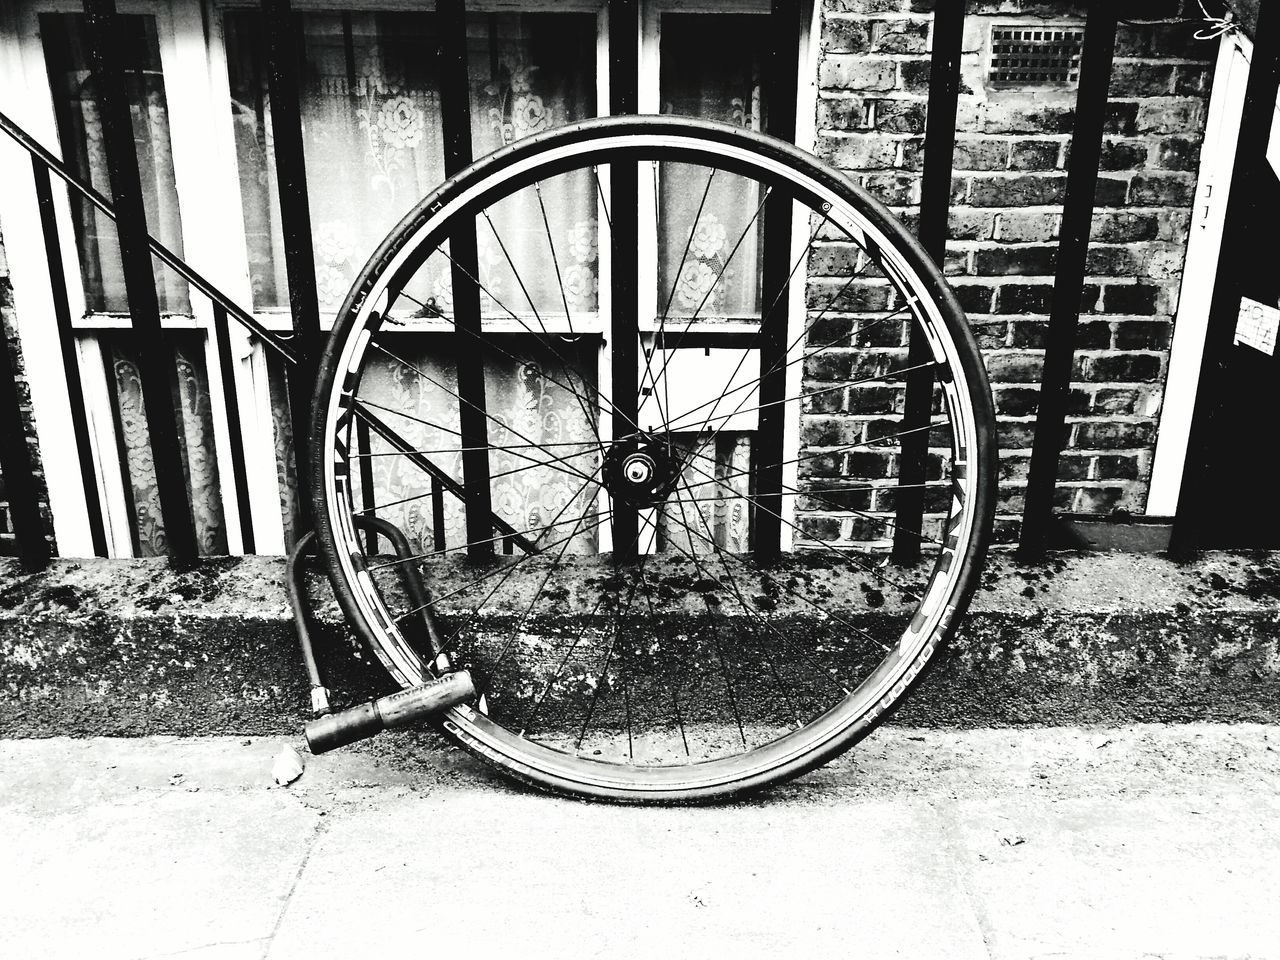 Metal No People Day Built Structure Outdoors Building Exterior Architecture Close-up Bicycle Bicycle Wheel Old-fashioned London Streets Black And White Photography